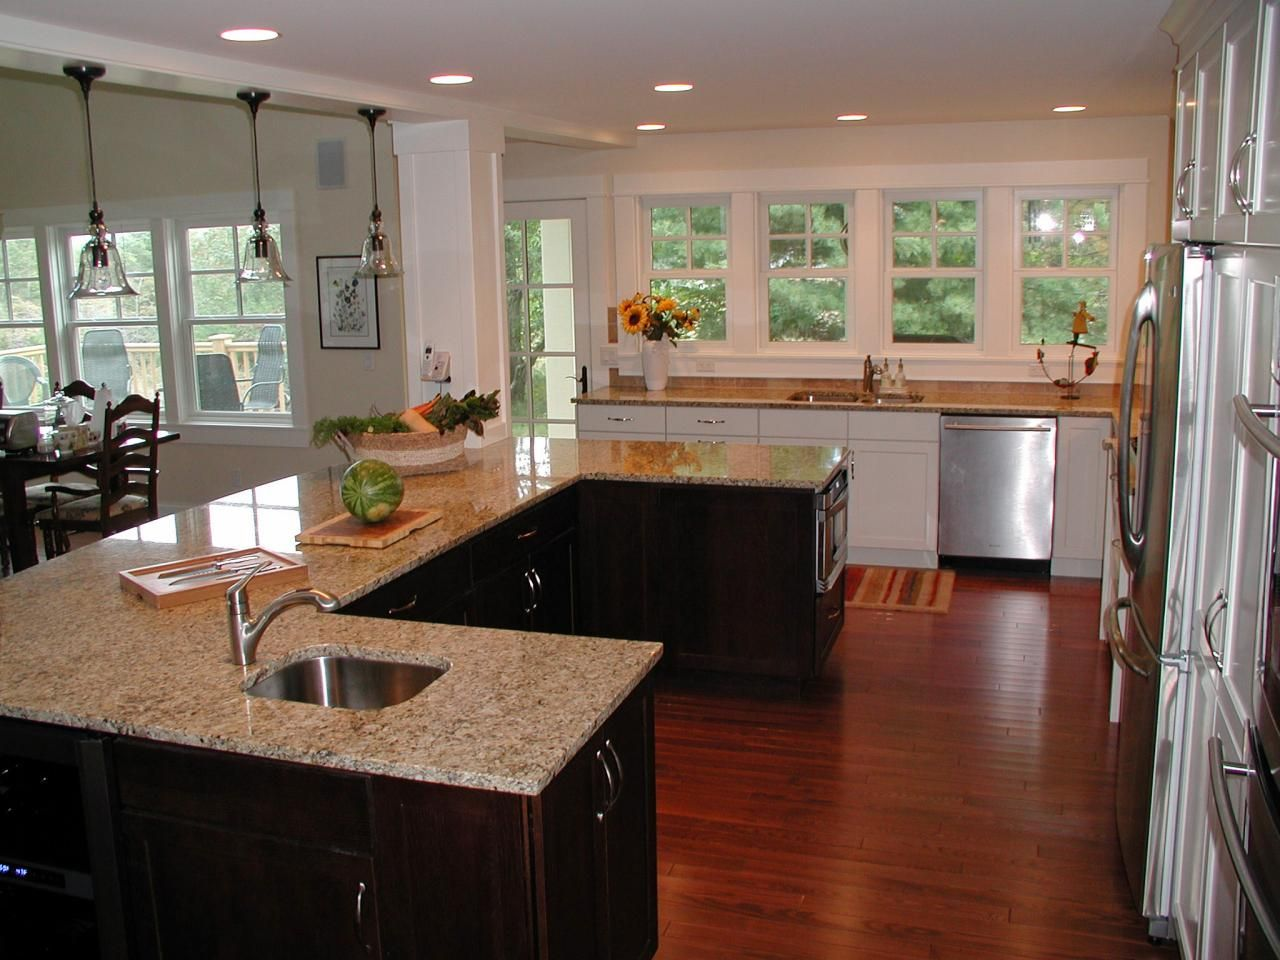 L shaped kitchen designs ideas for your beloved home kitchens and